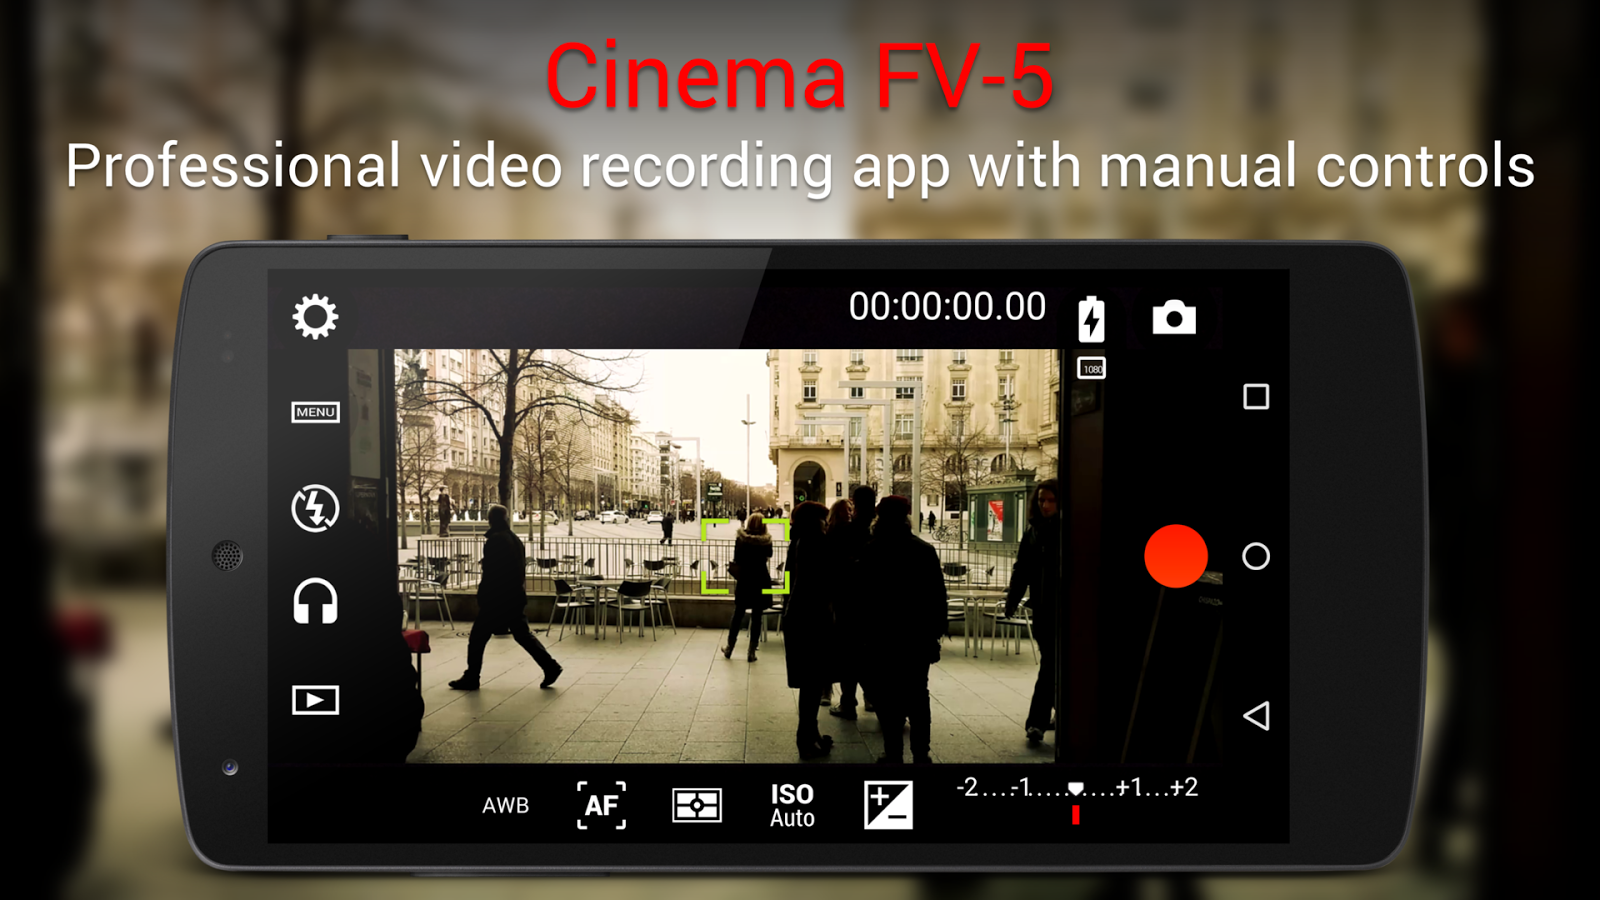 Free download cinema fv-5 apk for android.